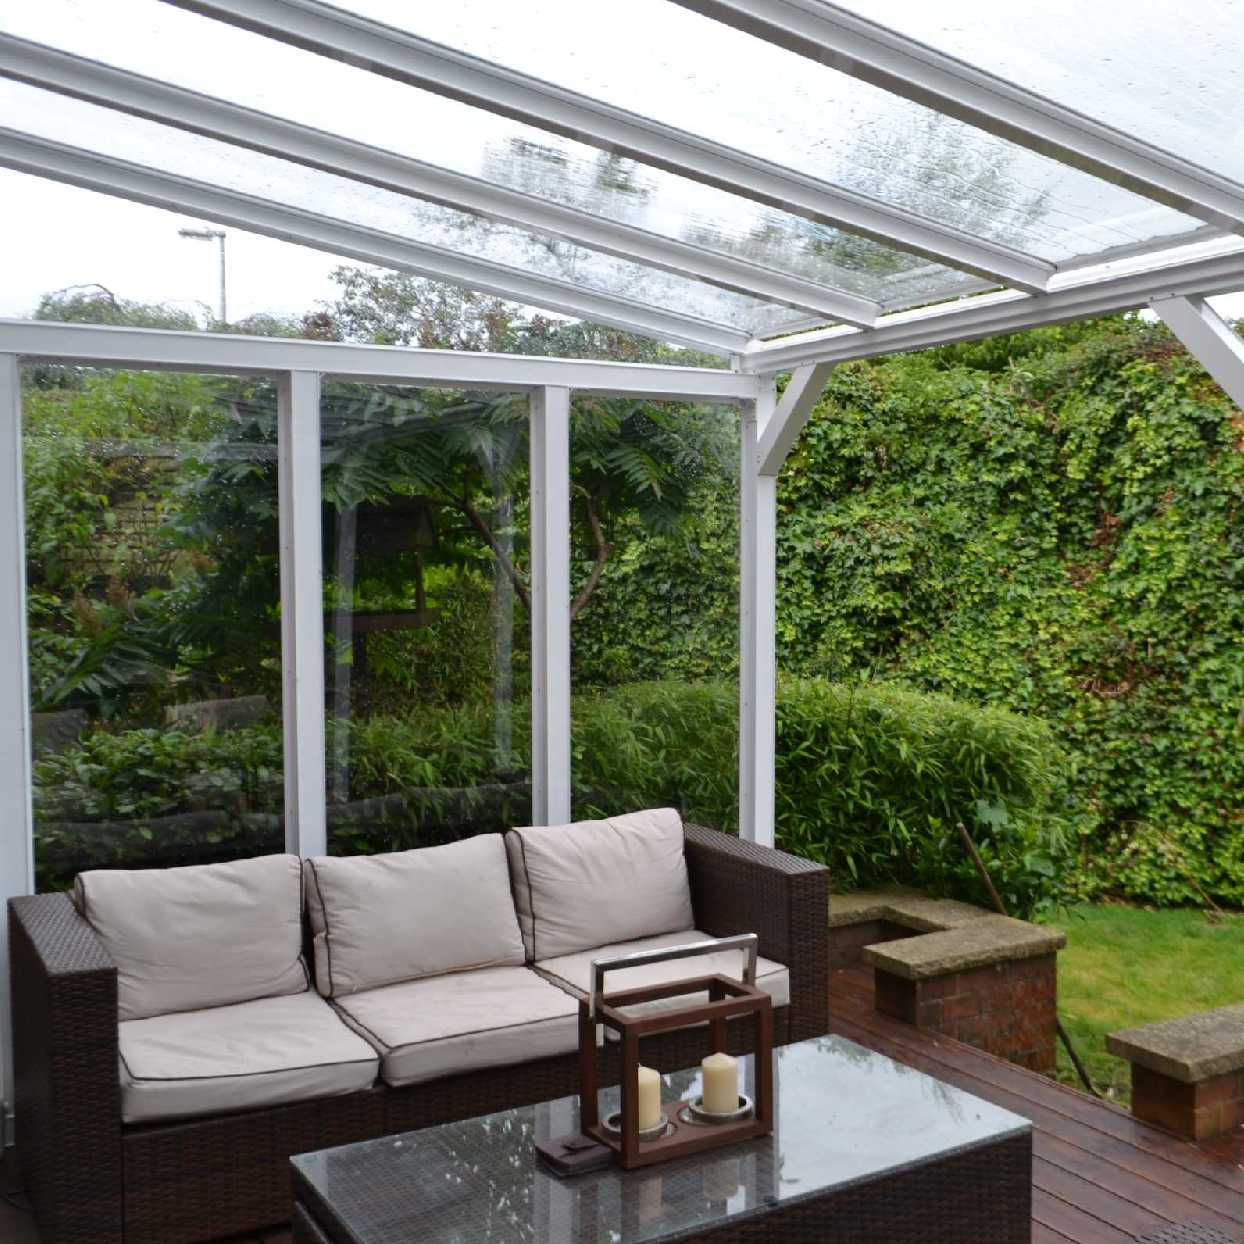 Great selection of Omega Smart Lean-To Canopy with 16mm Polycarbonate Glazing - 9.9m (W) x 3.5m (P), (5) Supporting Posts